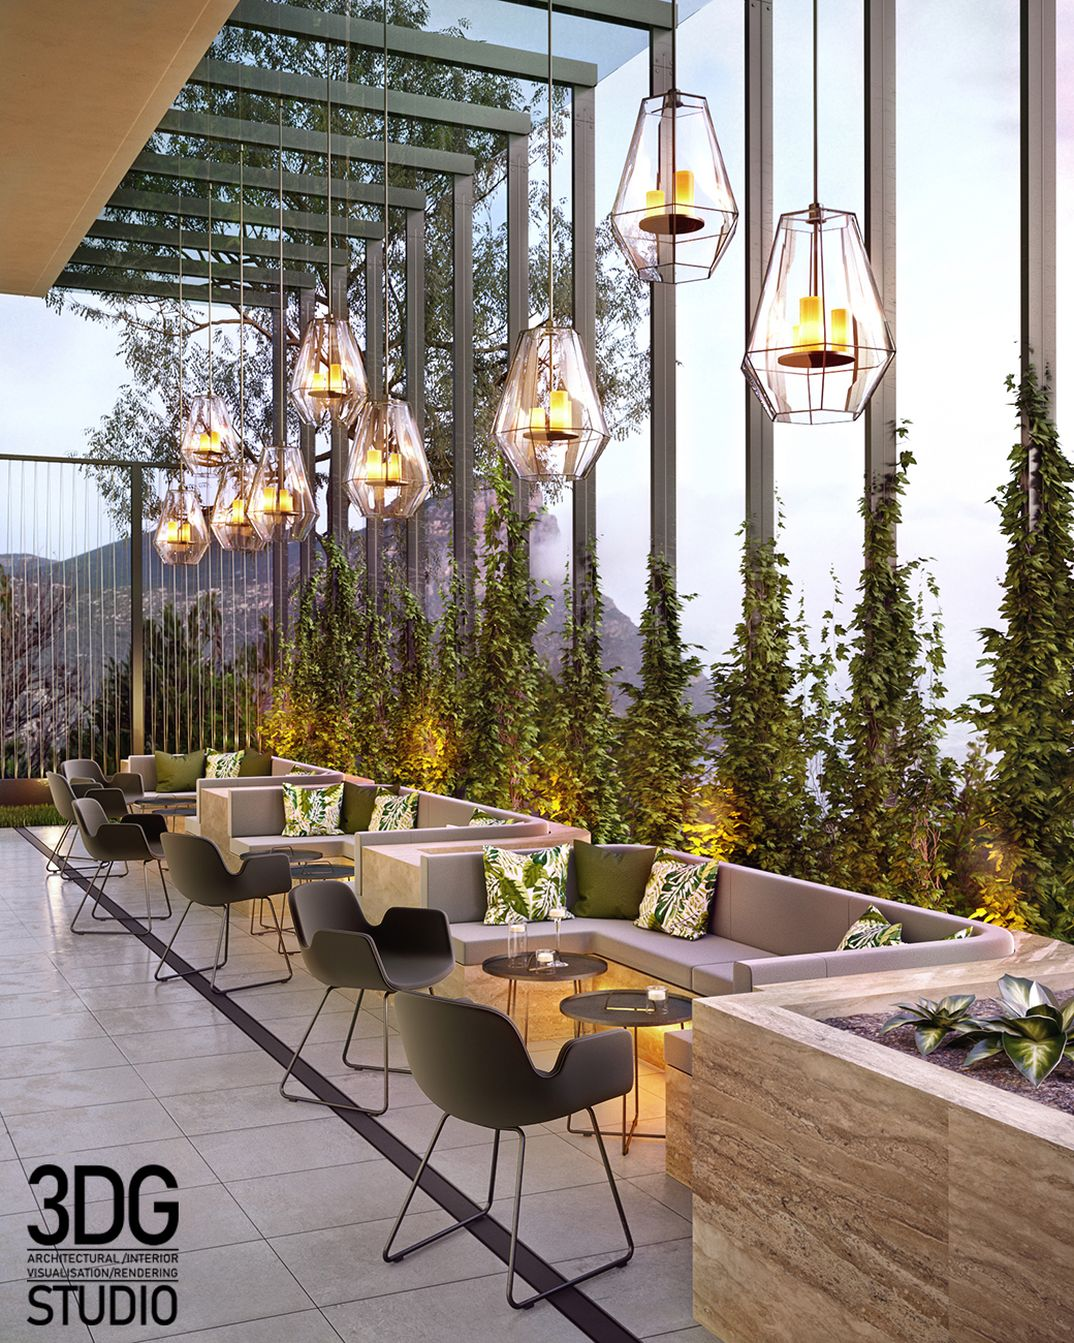 Restaurant terrace visualization.